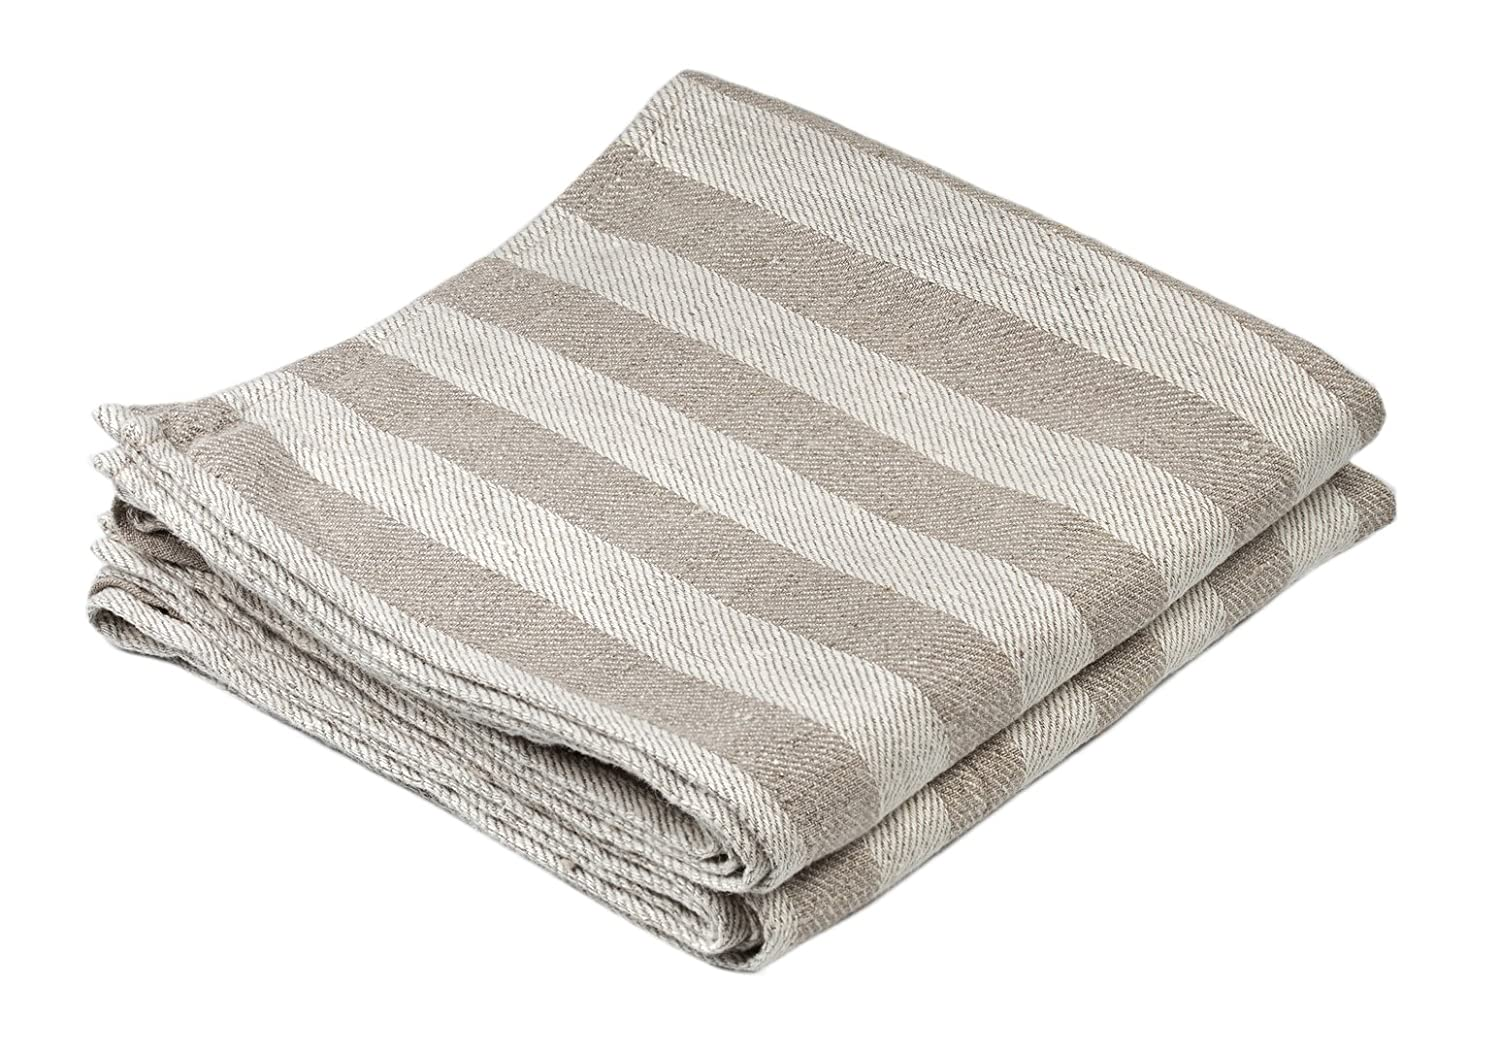 BLESS LINEN Jacquard Striped Pure Linen Hand Kitchen Towel, 16 x 30 Inches, Set of 2, Grey/White